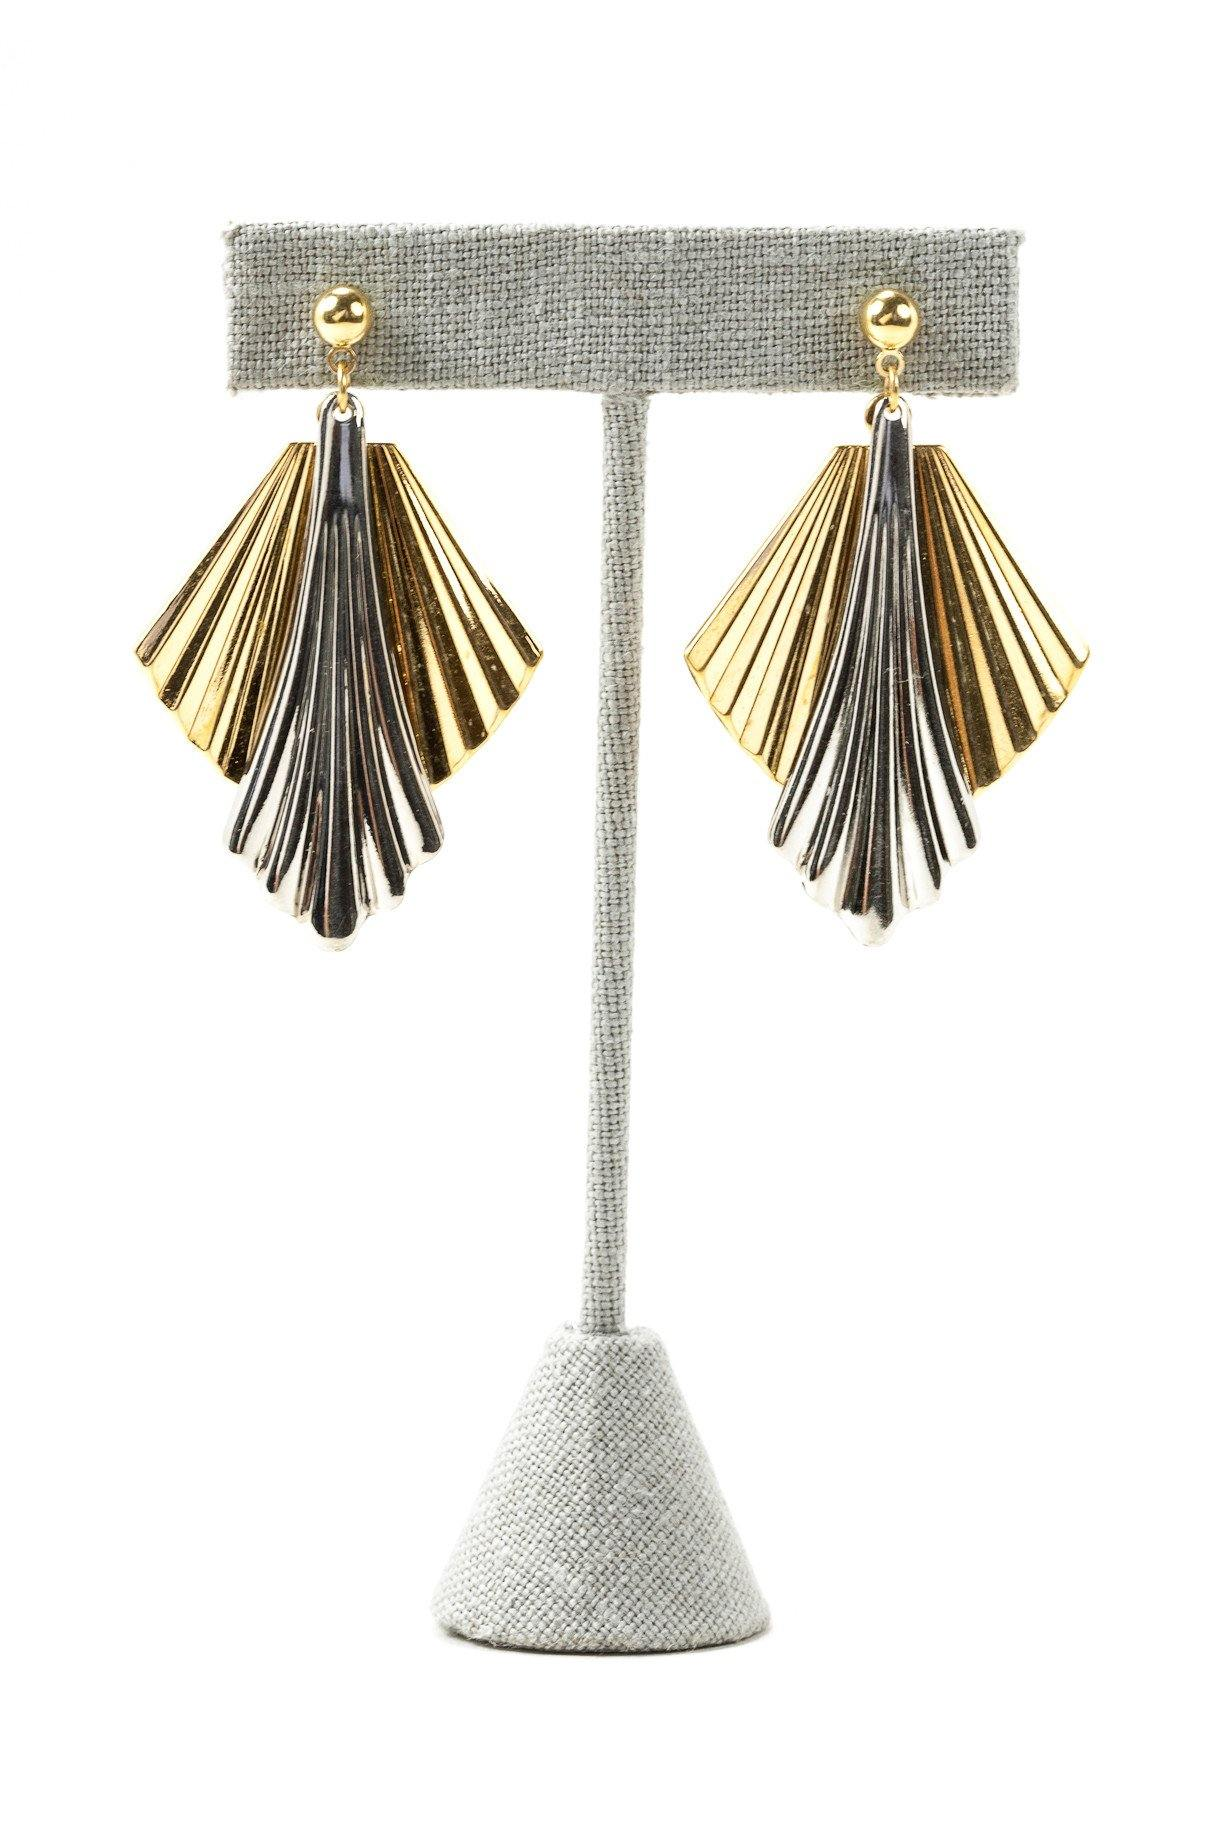 70's__Vintage__Gold and Silver Fan Drop Pierced Earrings